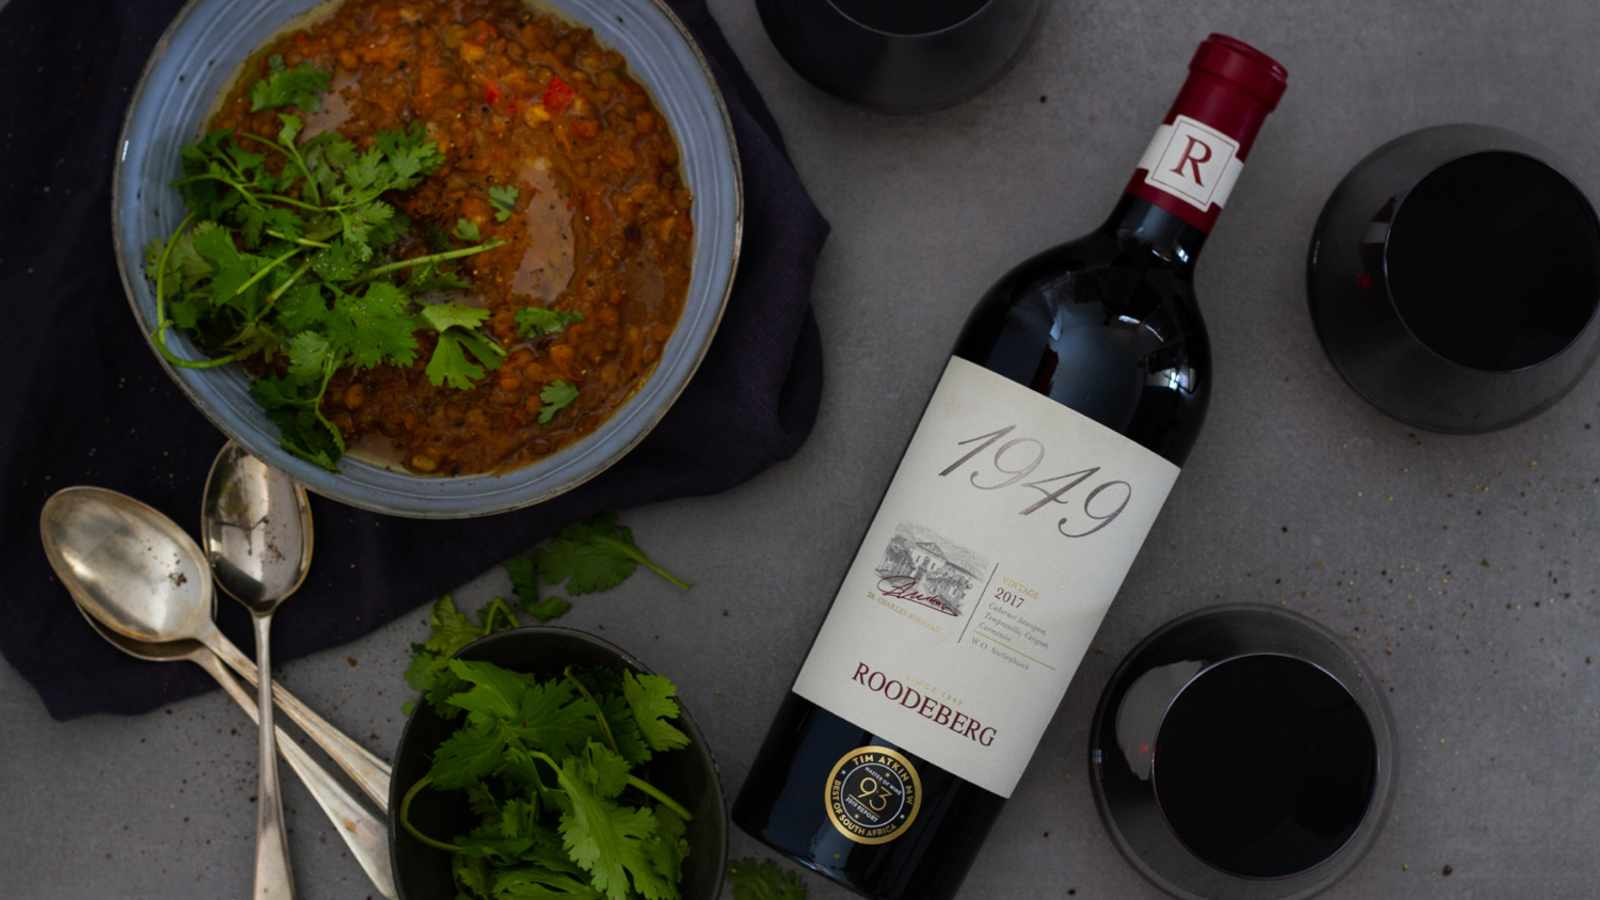 A hearty lentil and lamb soup paired with a full-bodied red wine